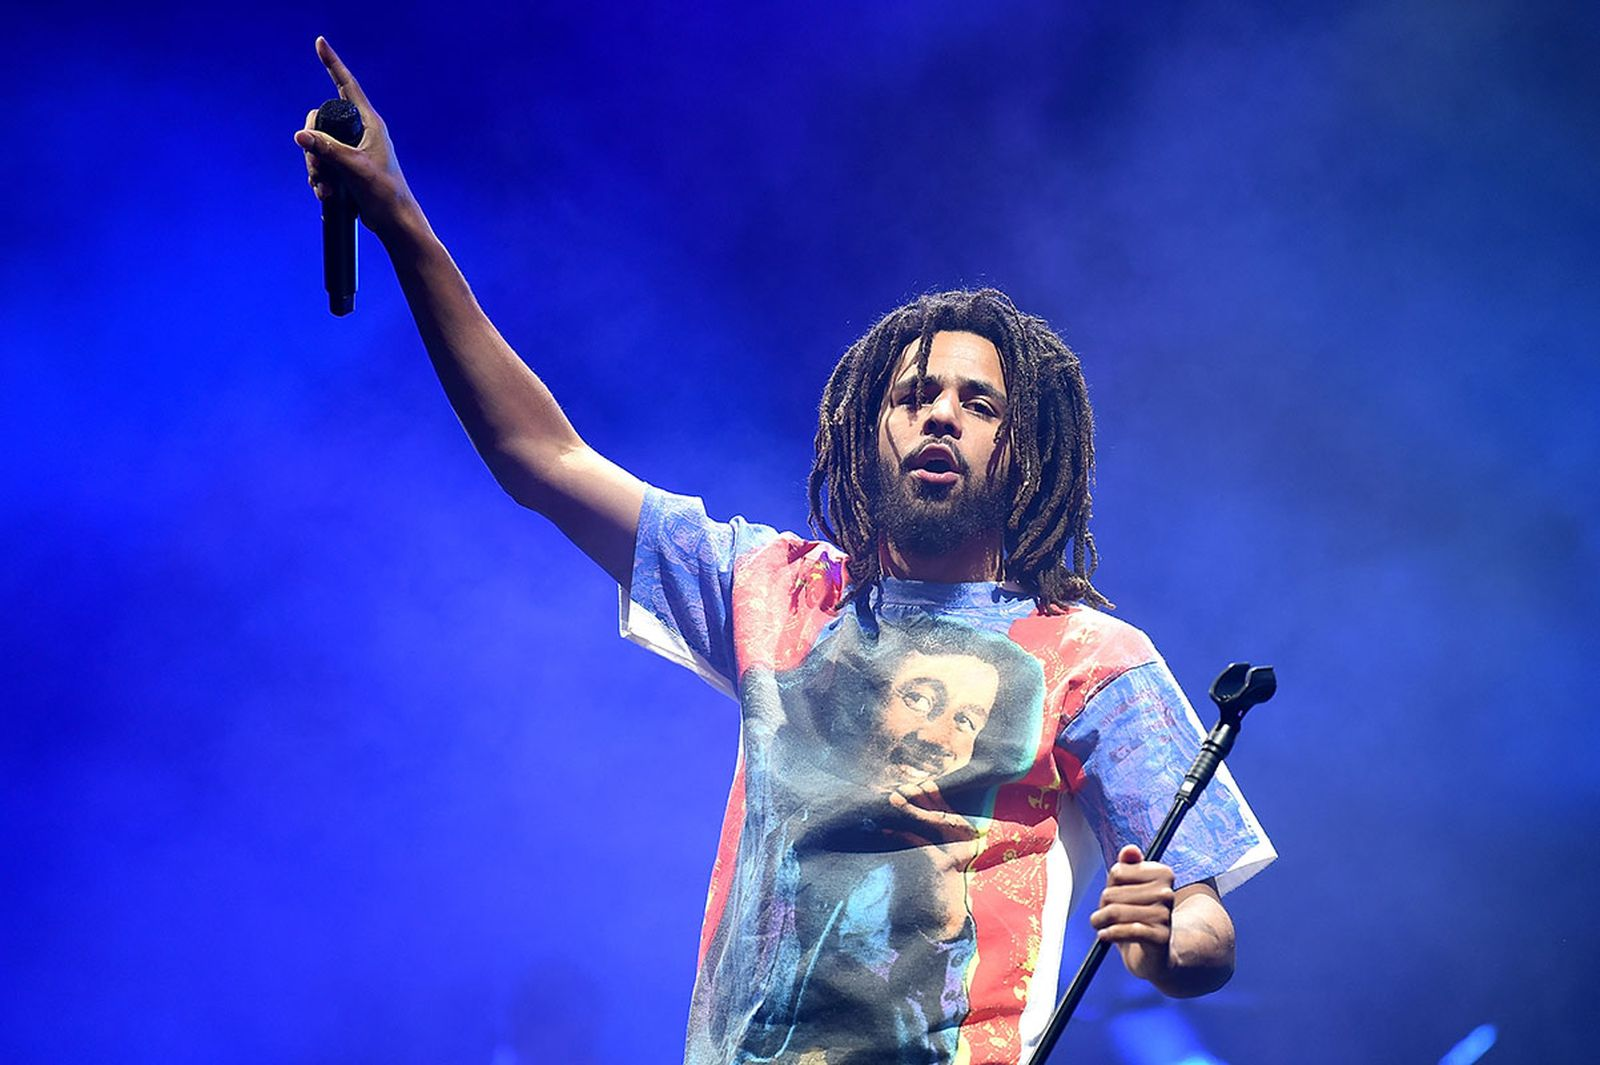 j. Cole performs wearing bob Marley t-shirt